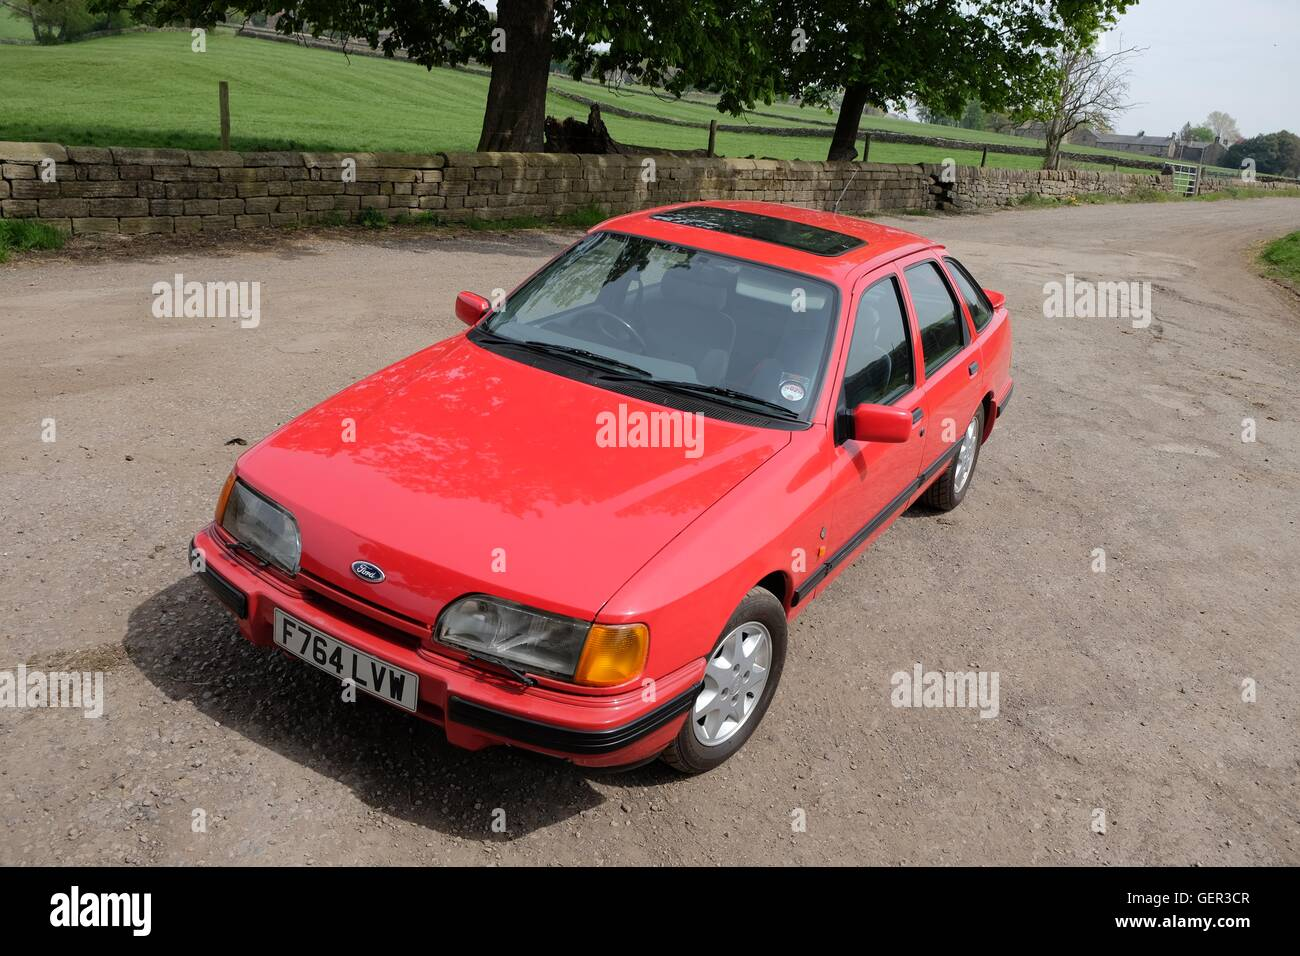 Ford Sierra XR 4x4 standing on a quiet country lane in Summer - Stock Image